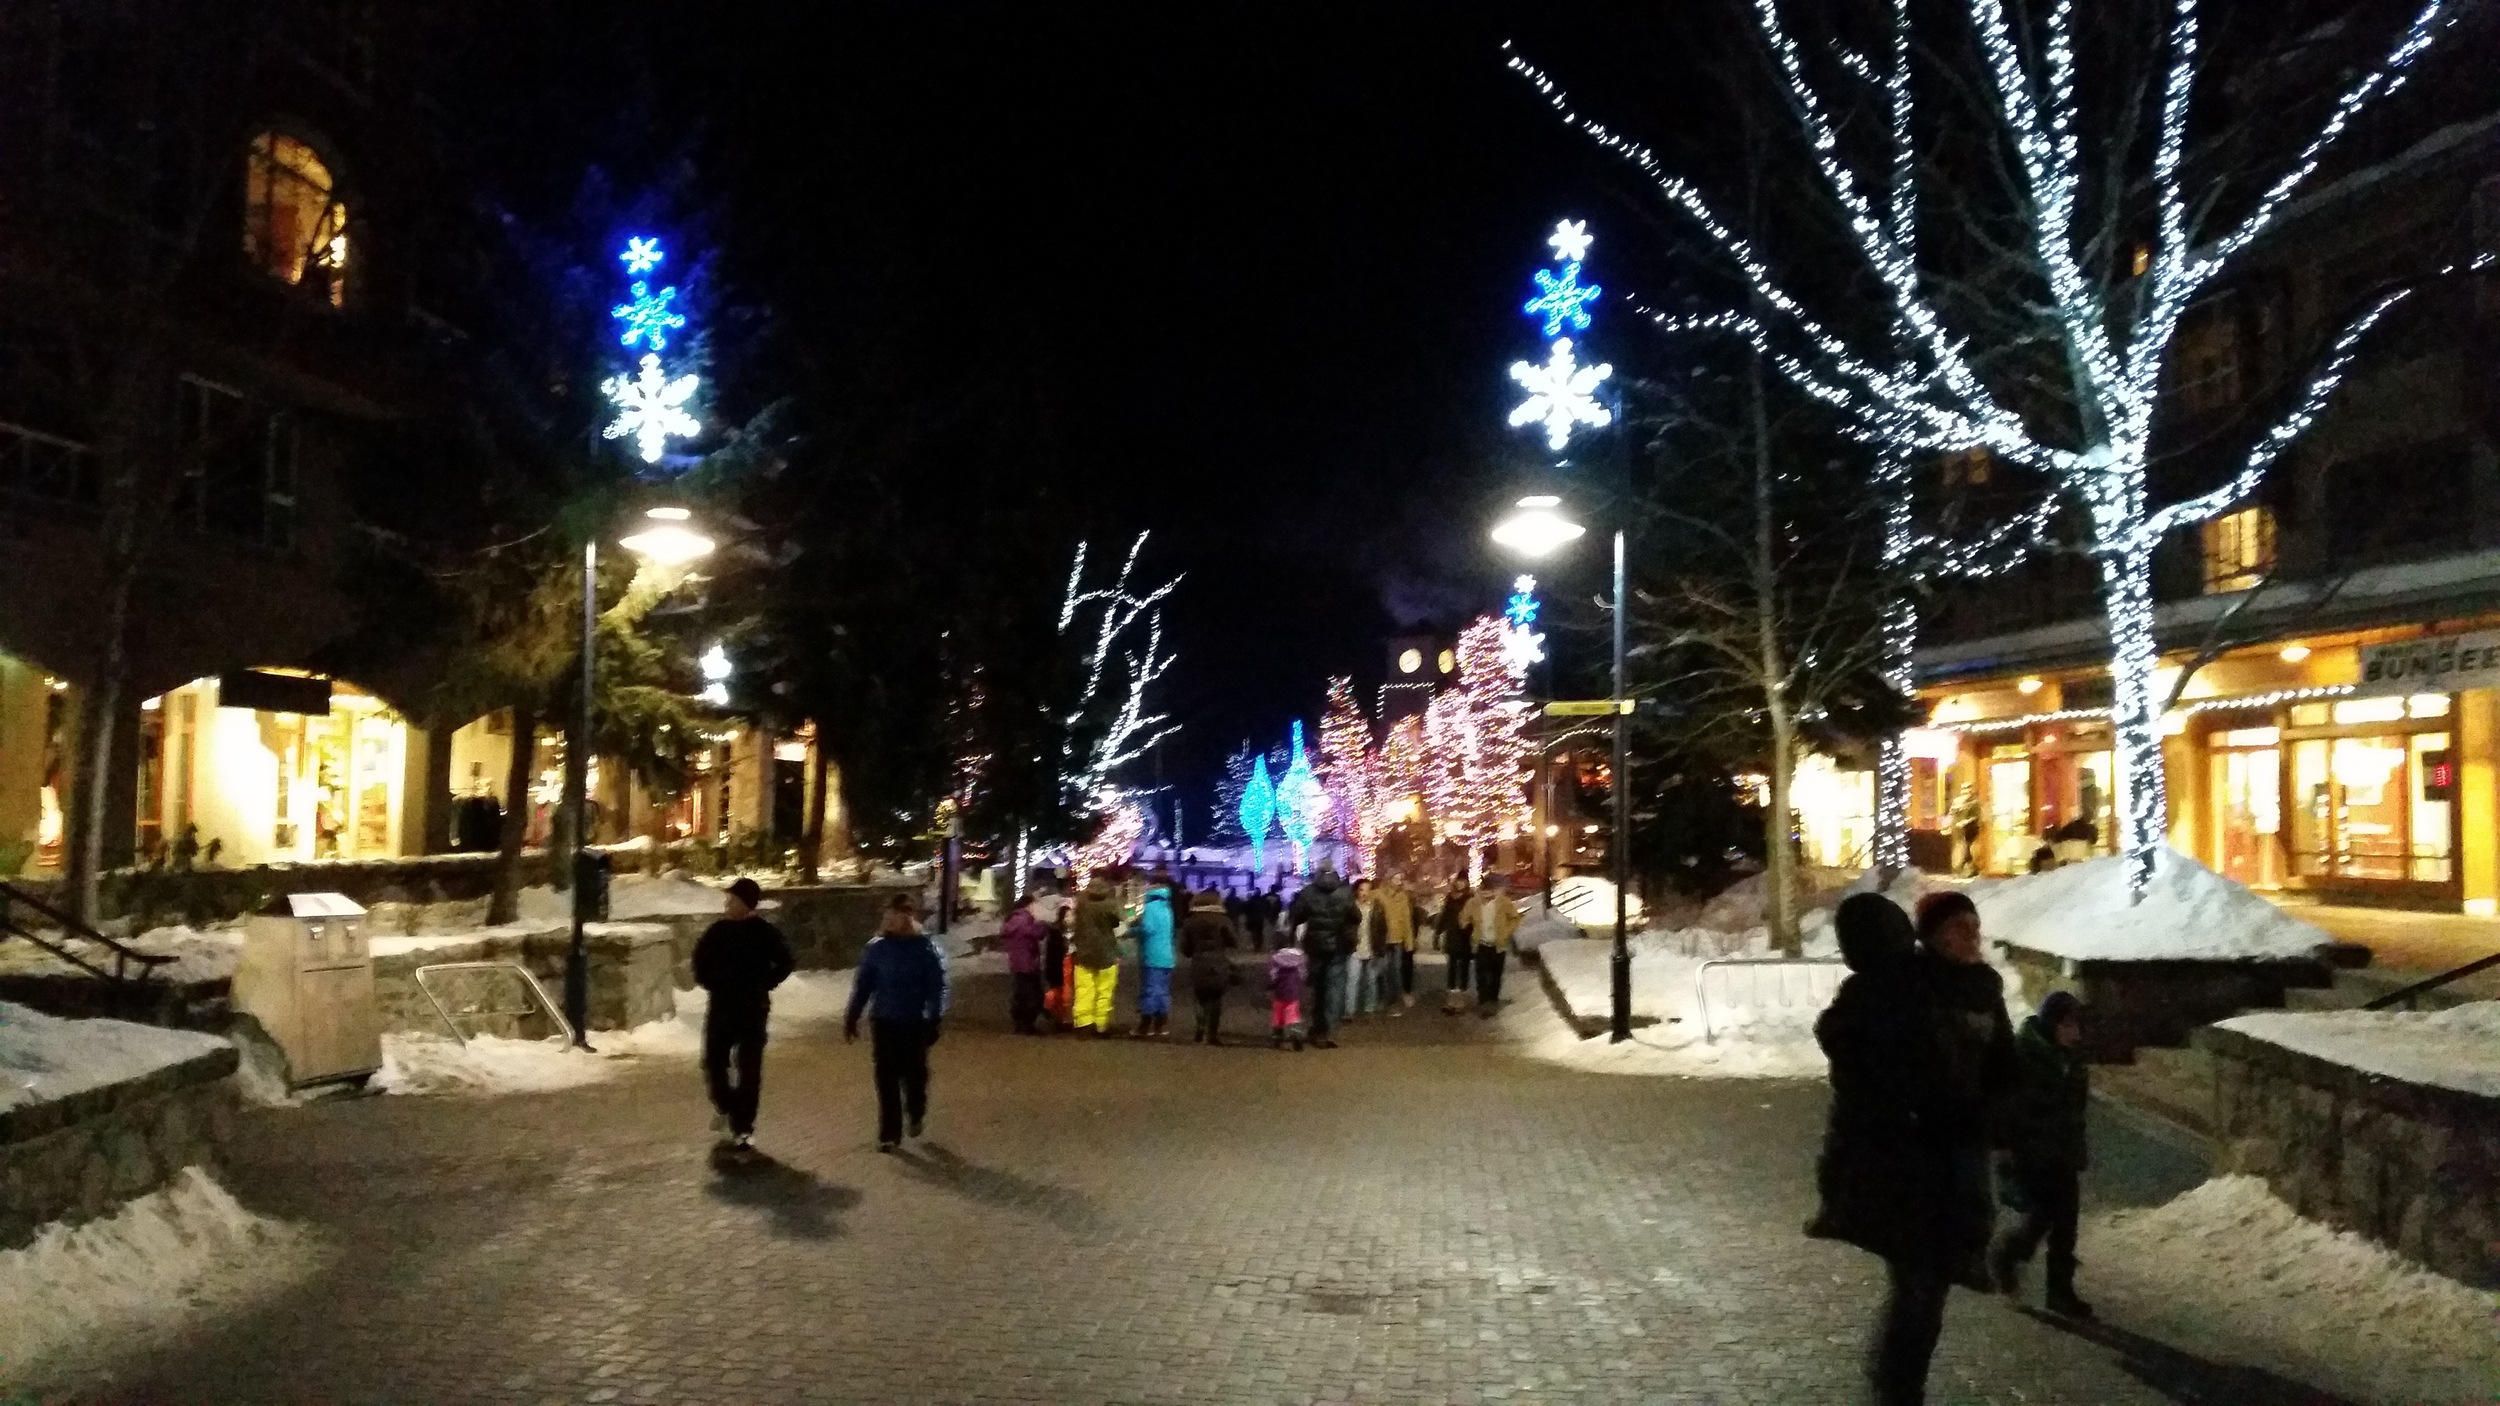 Christmas and bogans. I wasn't kidding, this is the gonorrhea capital of BC